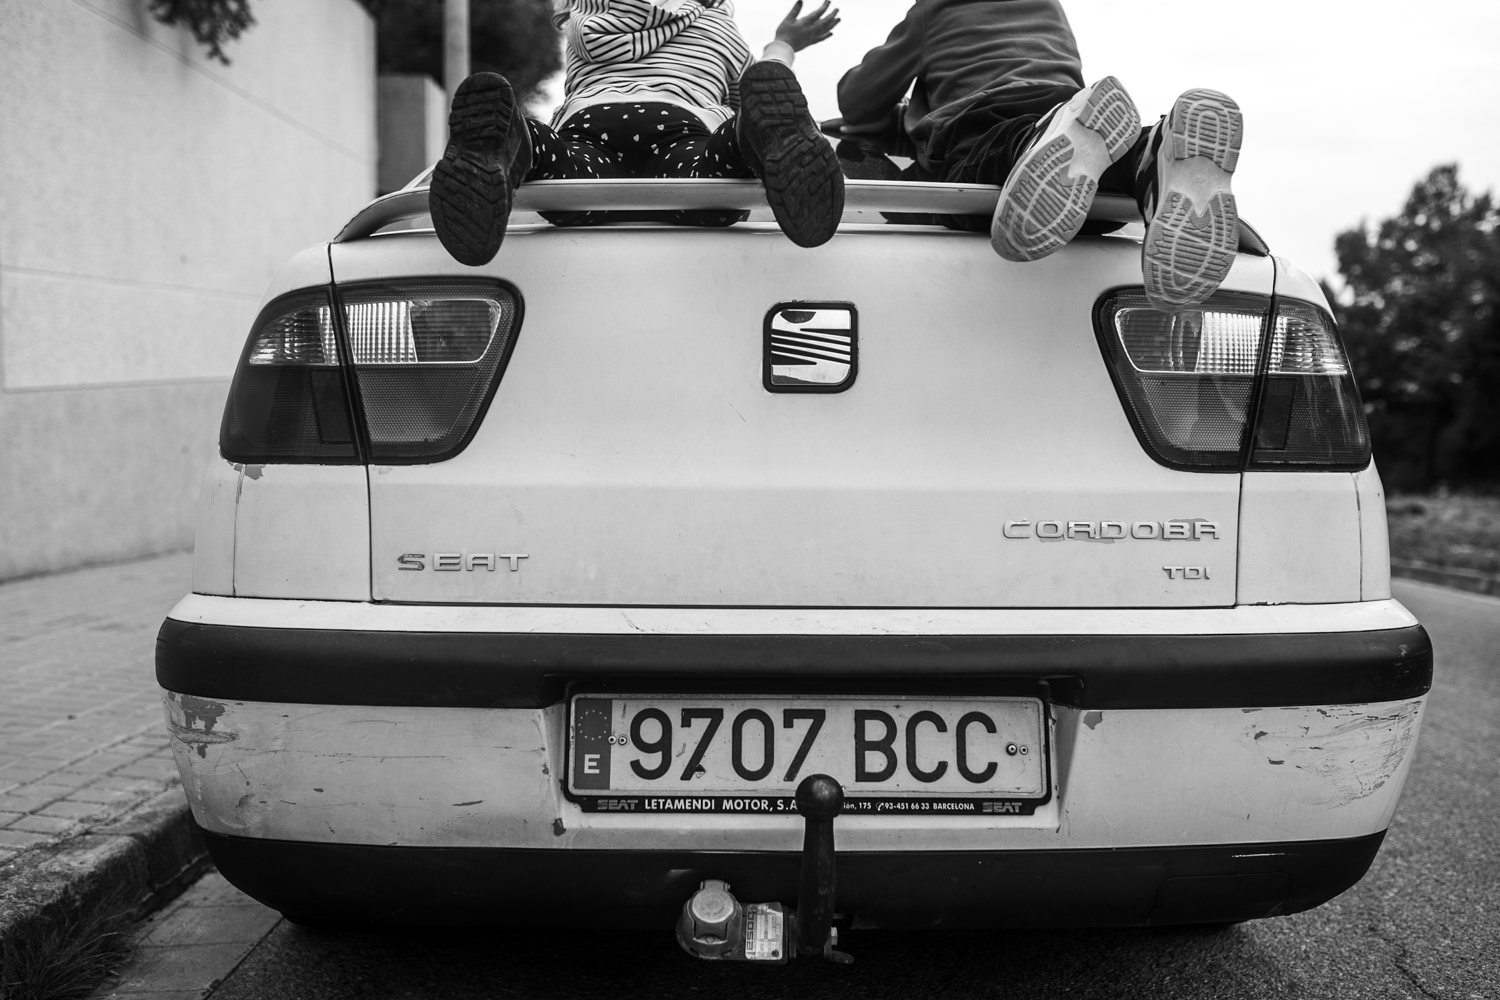 2 children playing in the car